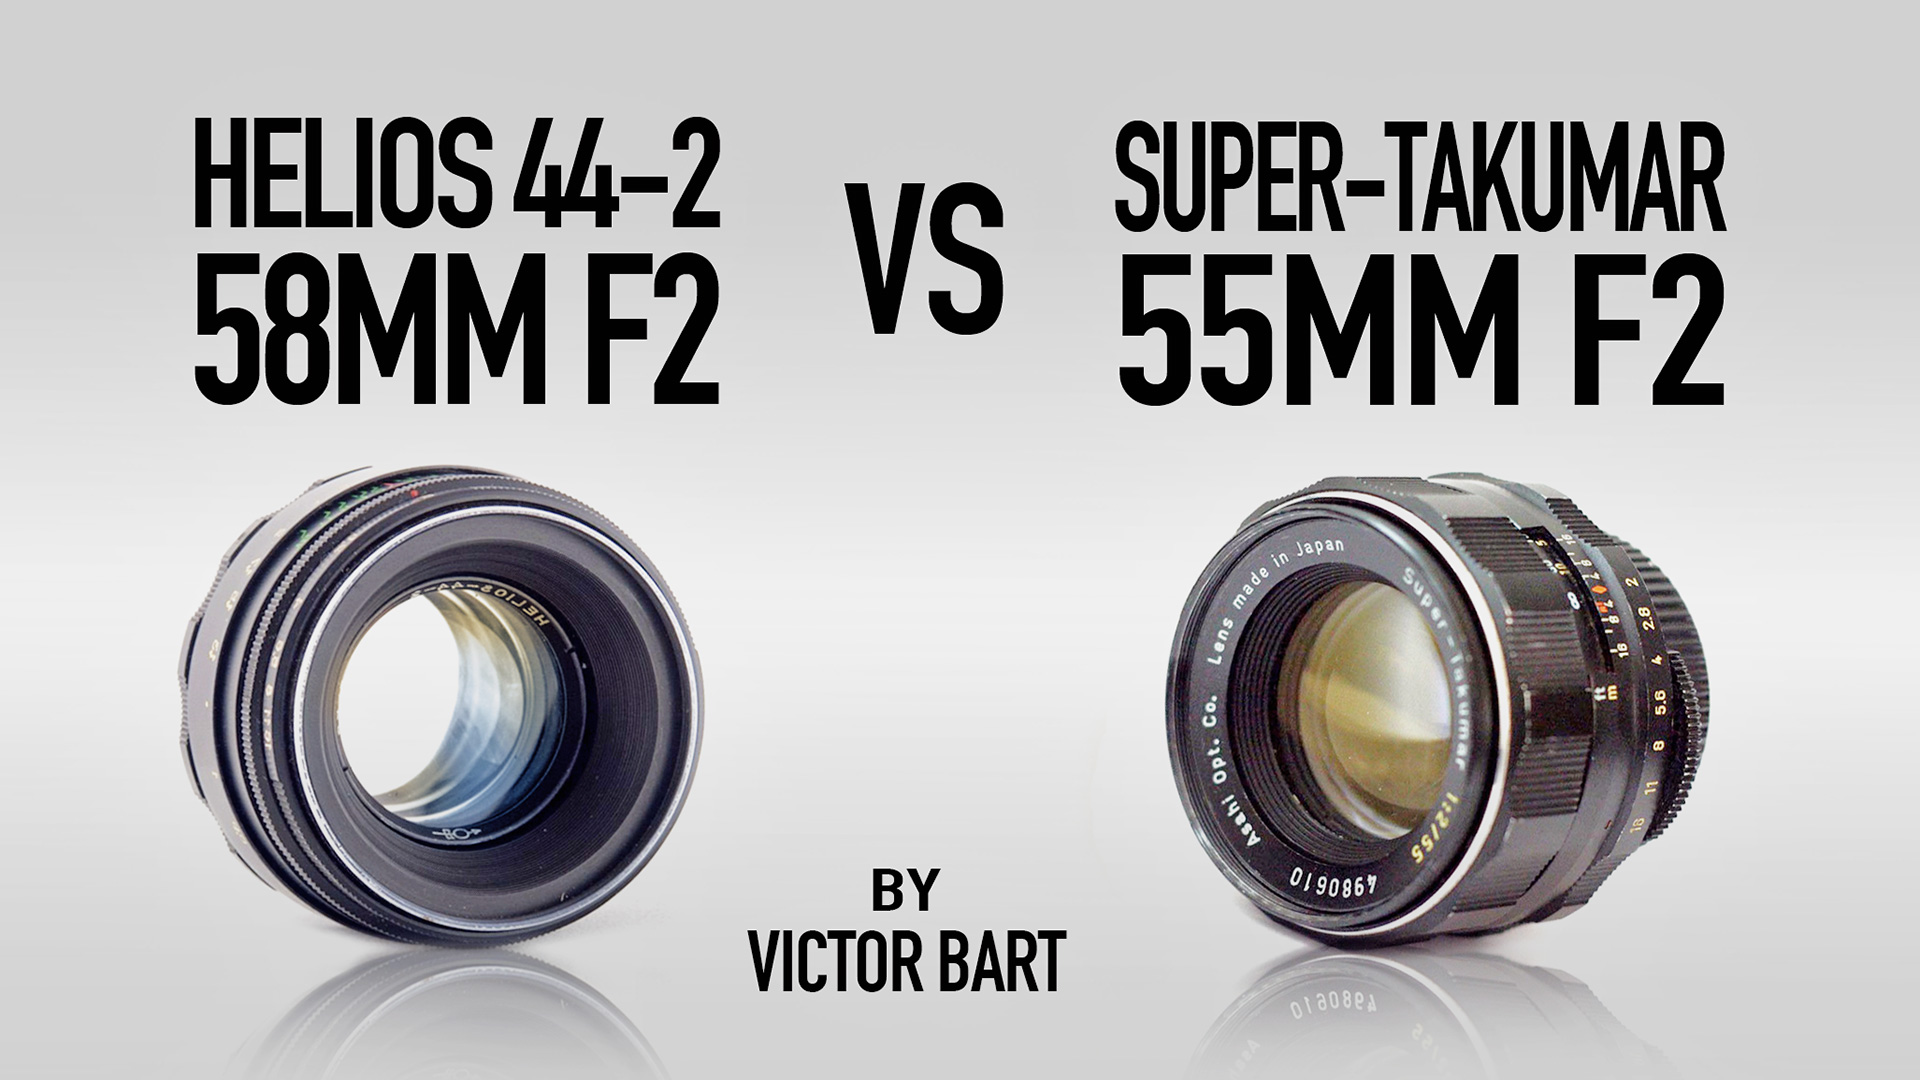 Super-Takumar 55mm F2 vs Helios 44-2 58mm F2